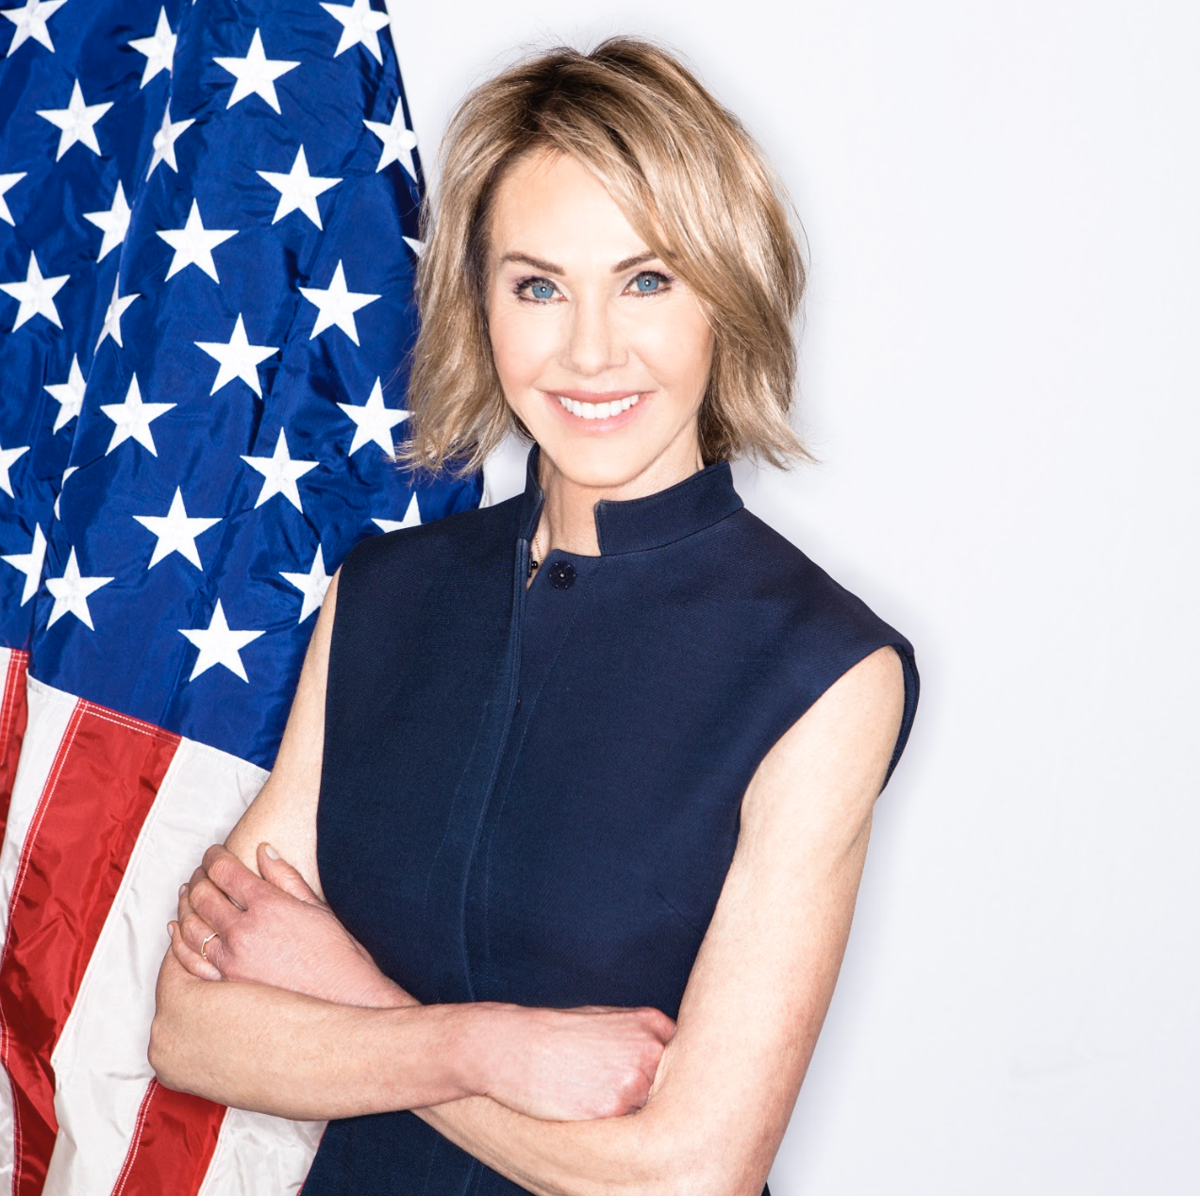 AMB Craft, U.S. Flag,jpg